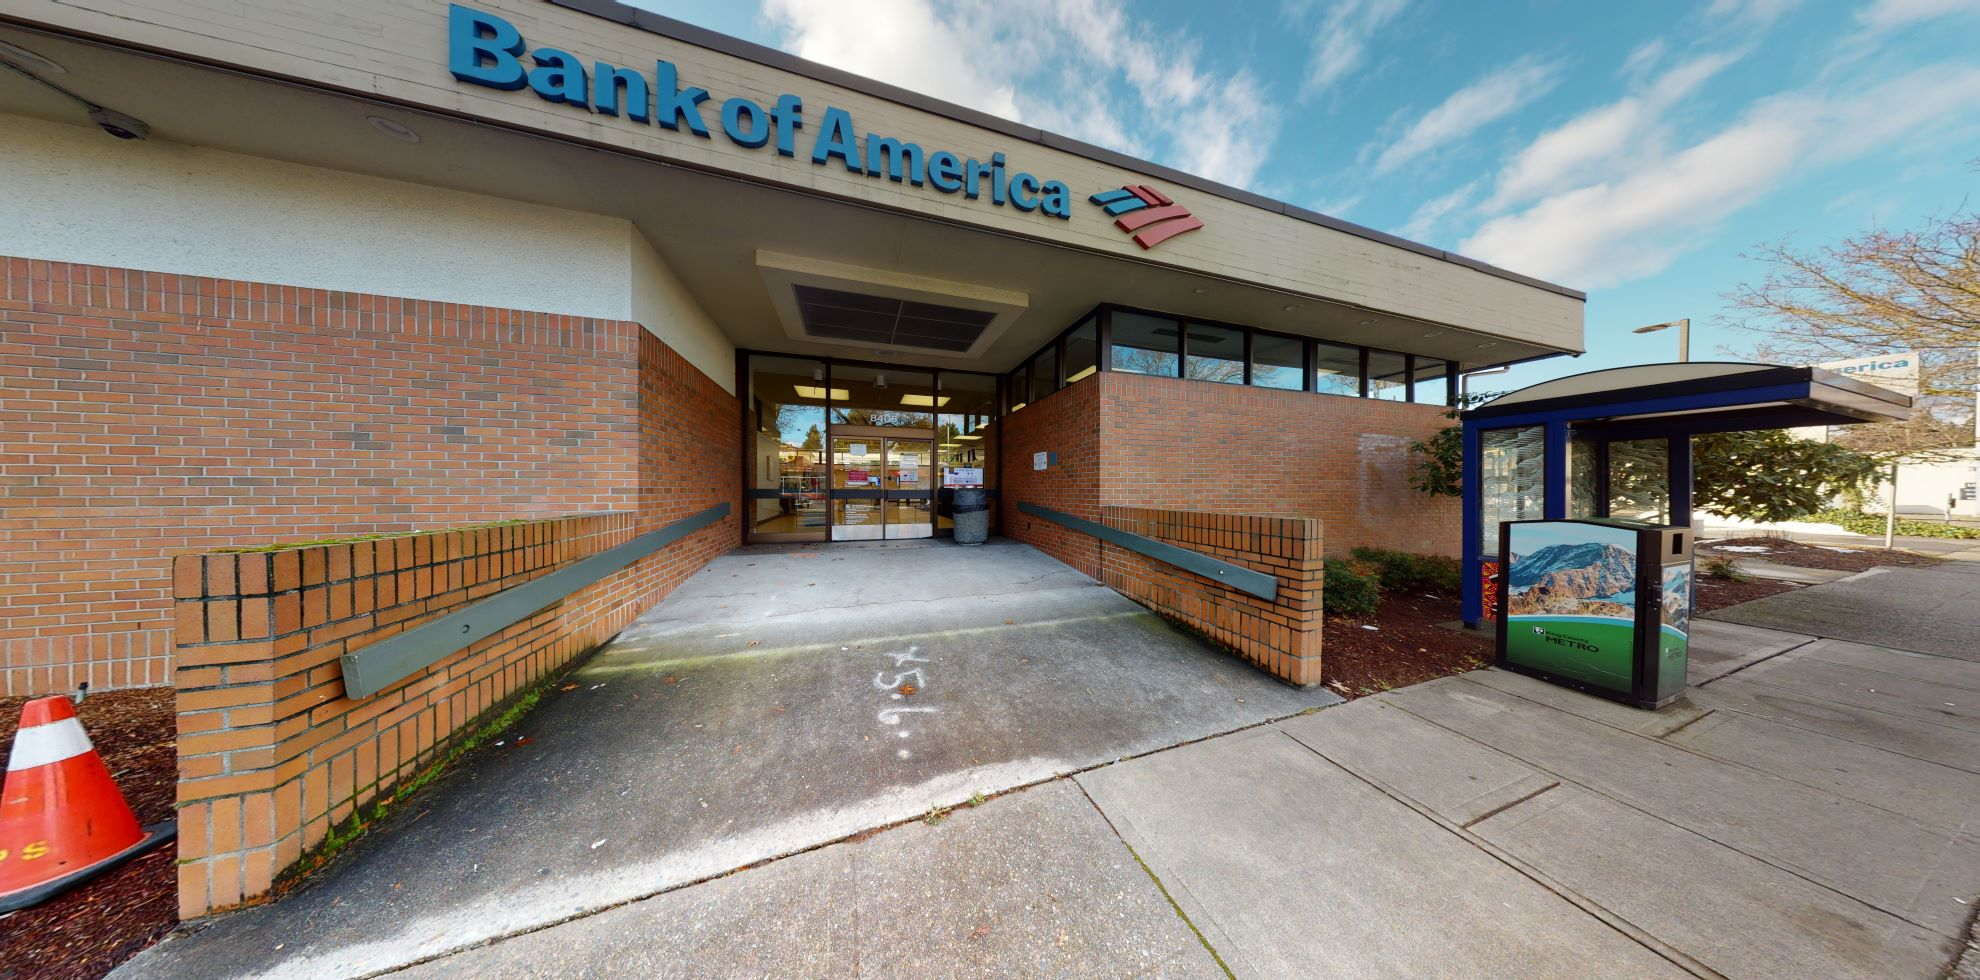 Bank of America financial center with drive-thru ATM   8405 35th Ave NE, Seattle, WA 98115